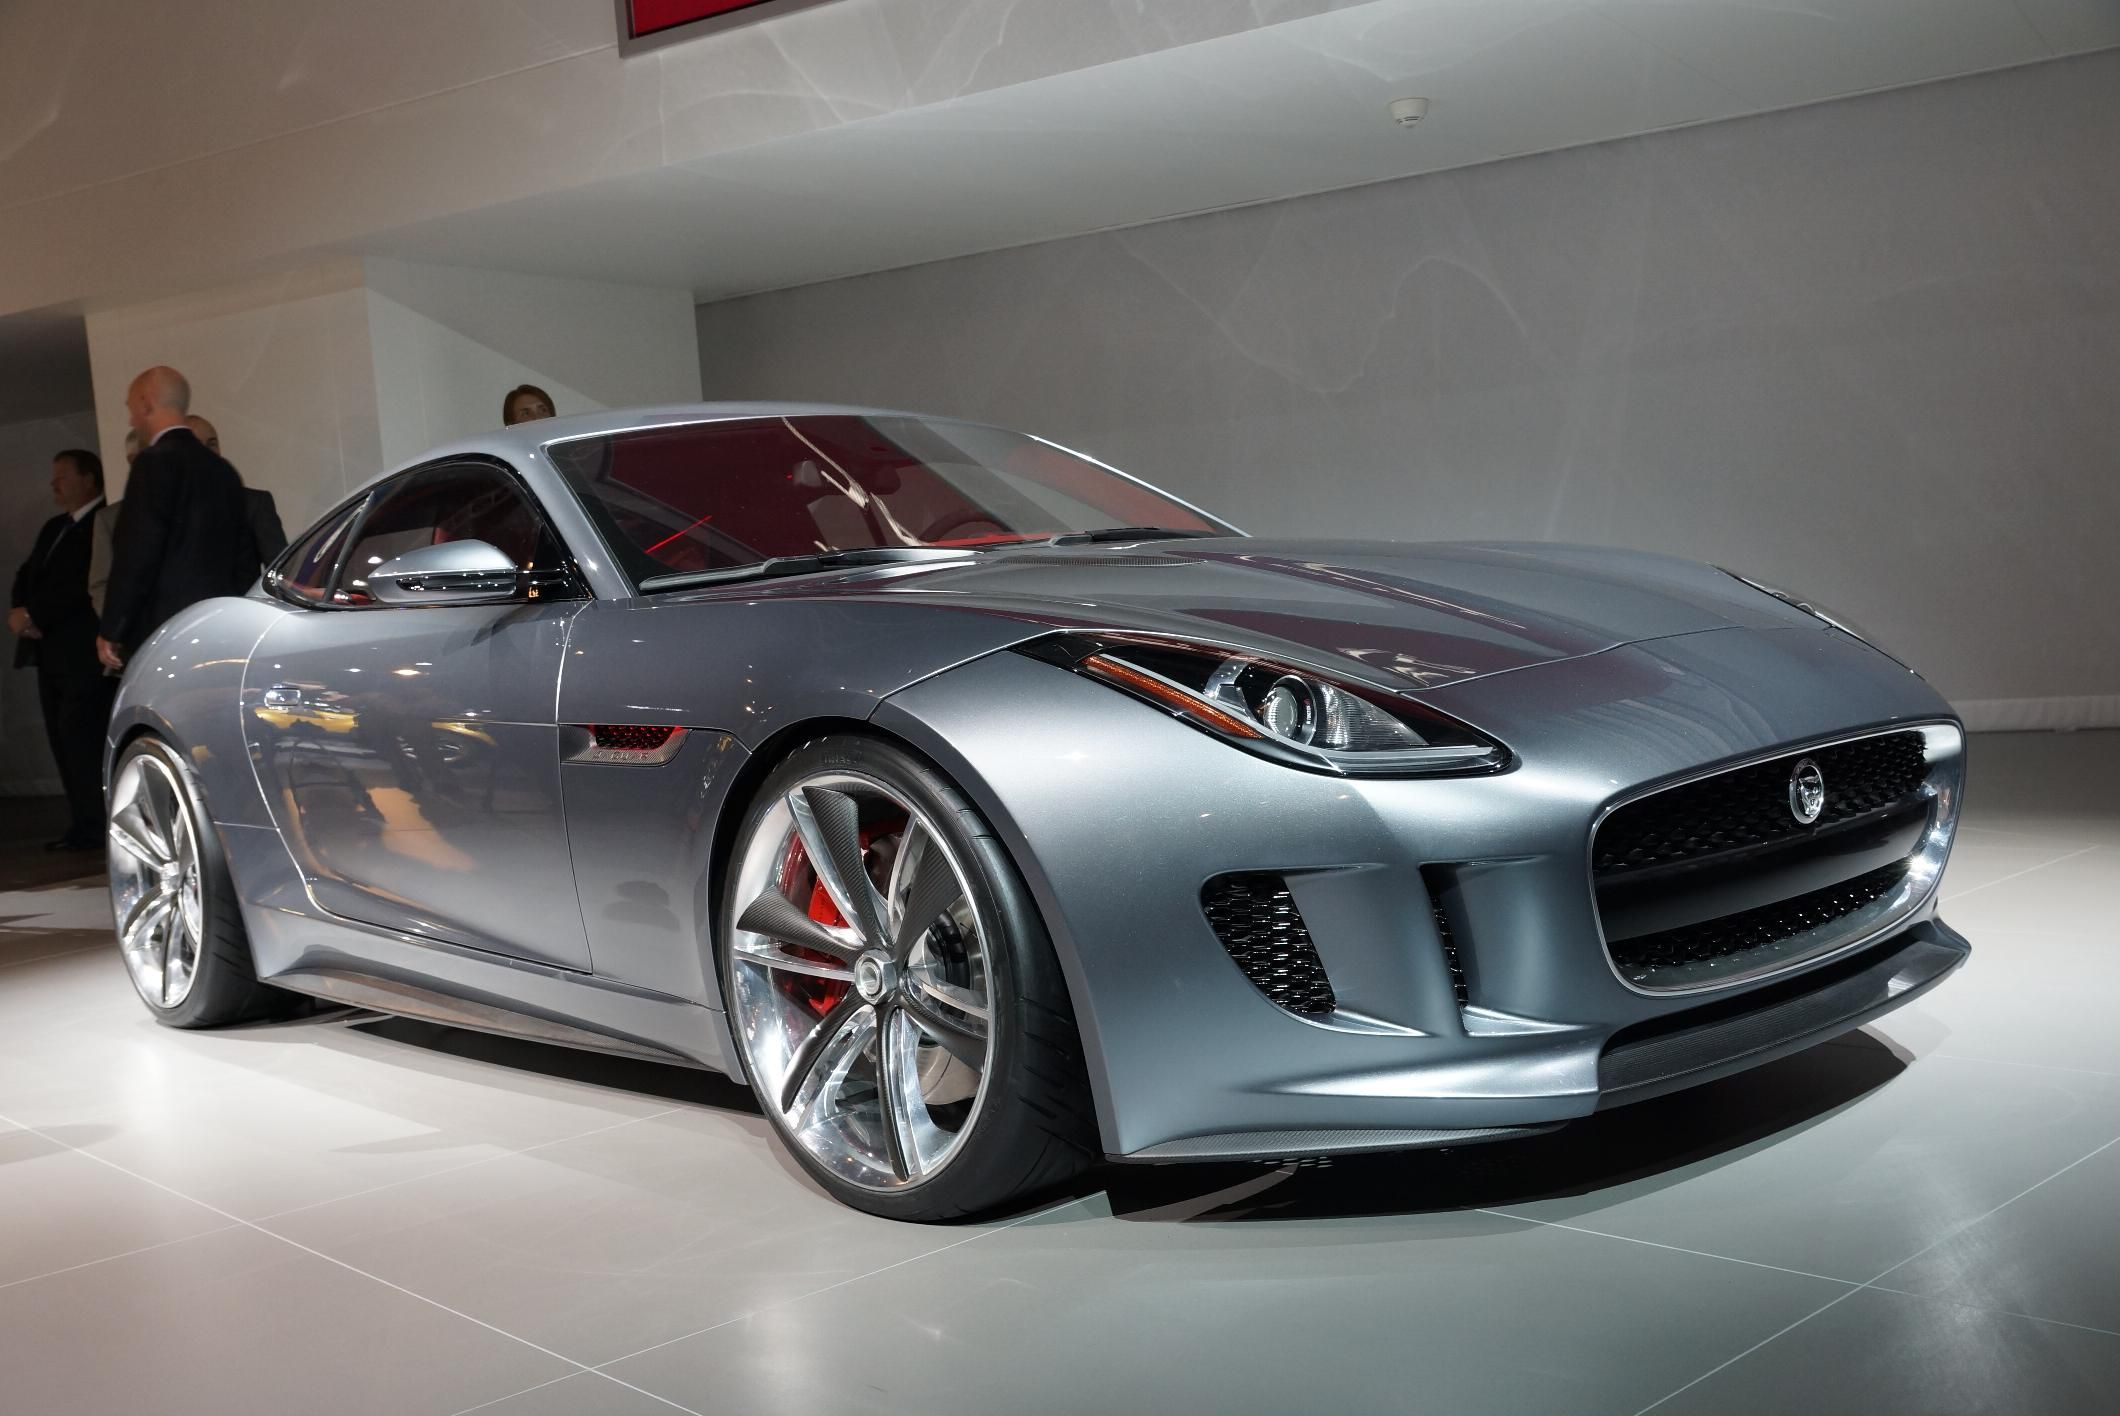 Jaguar Cars News Jaguar F Type News Jaguar 39s New Sports Car Is The F